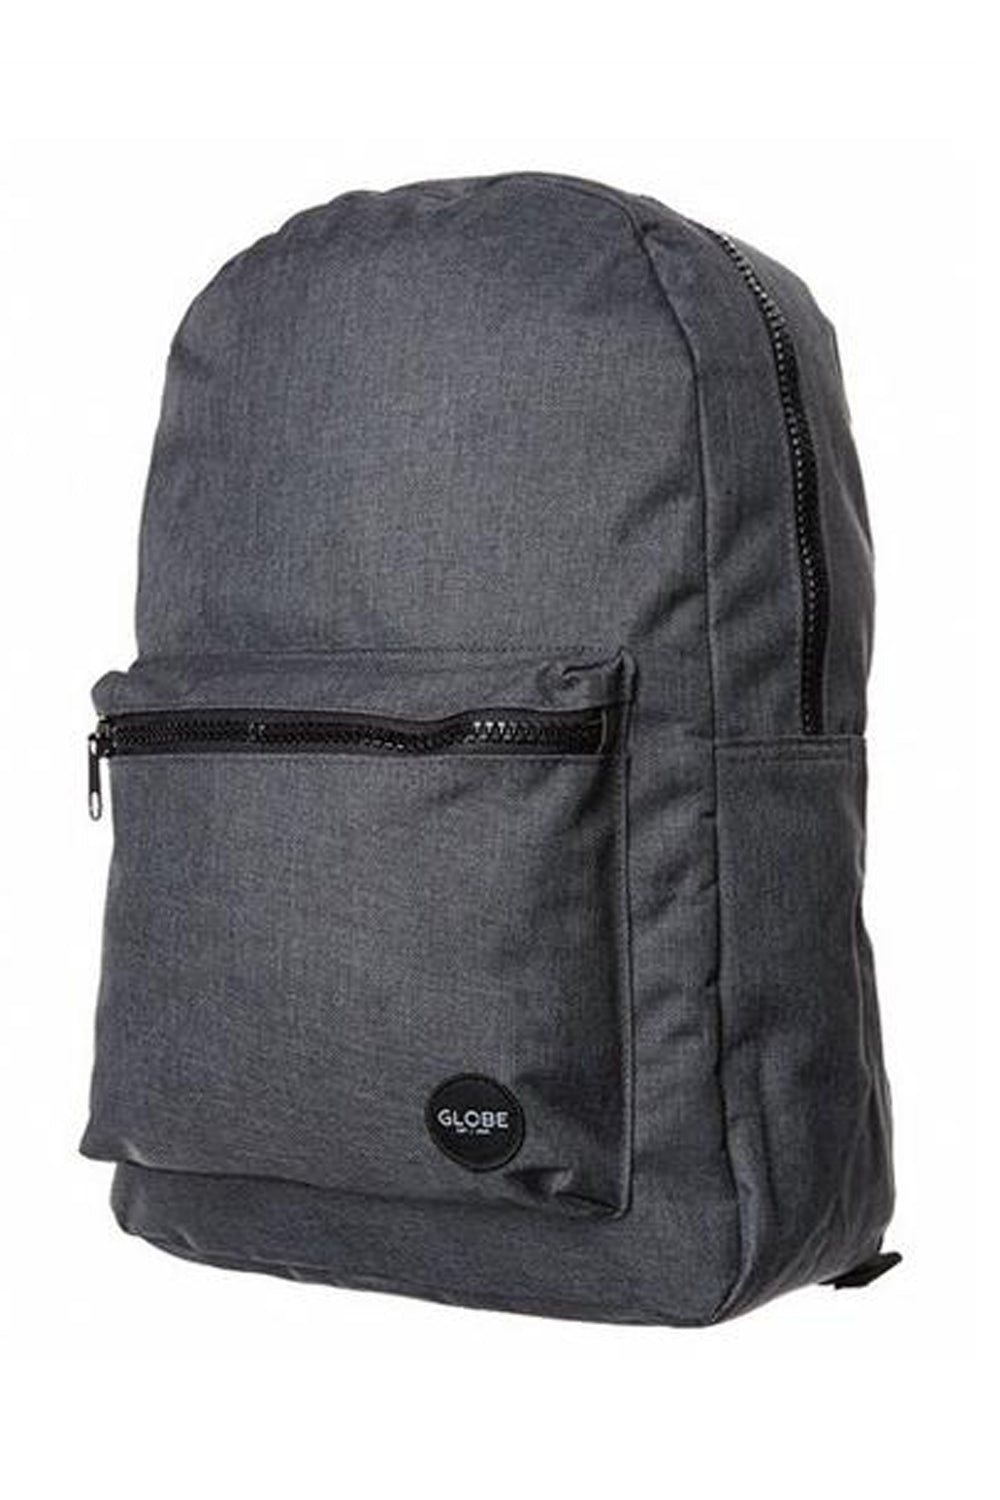 Globe Deluxe Backpack - Charcoal